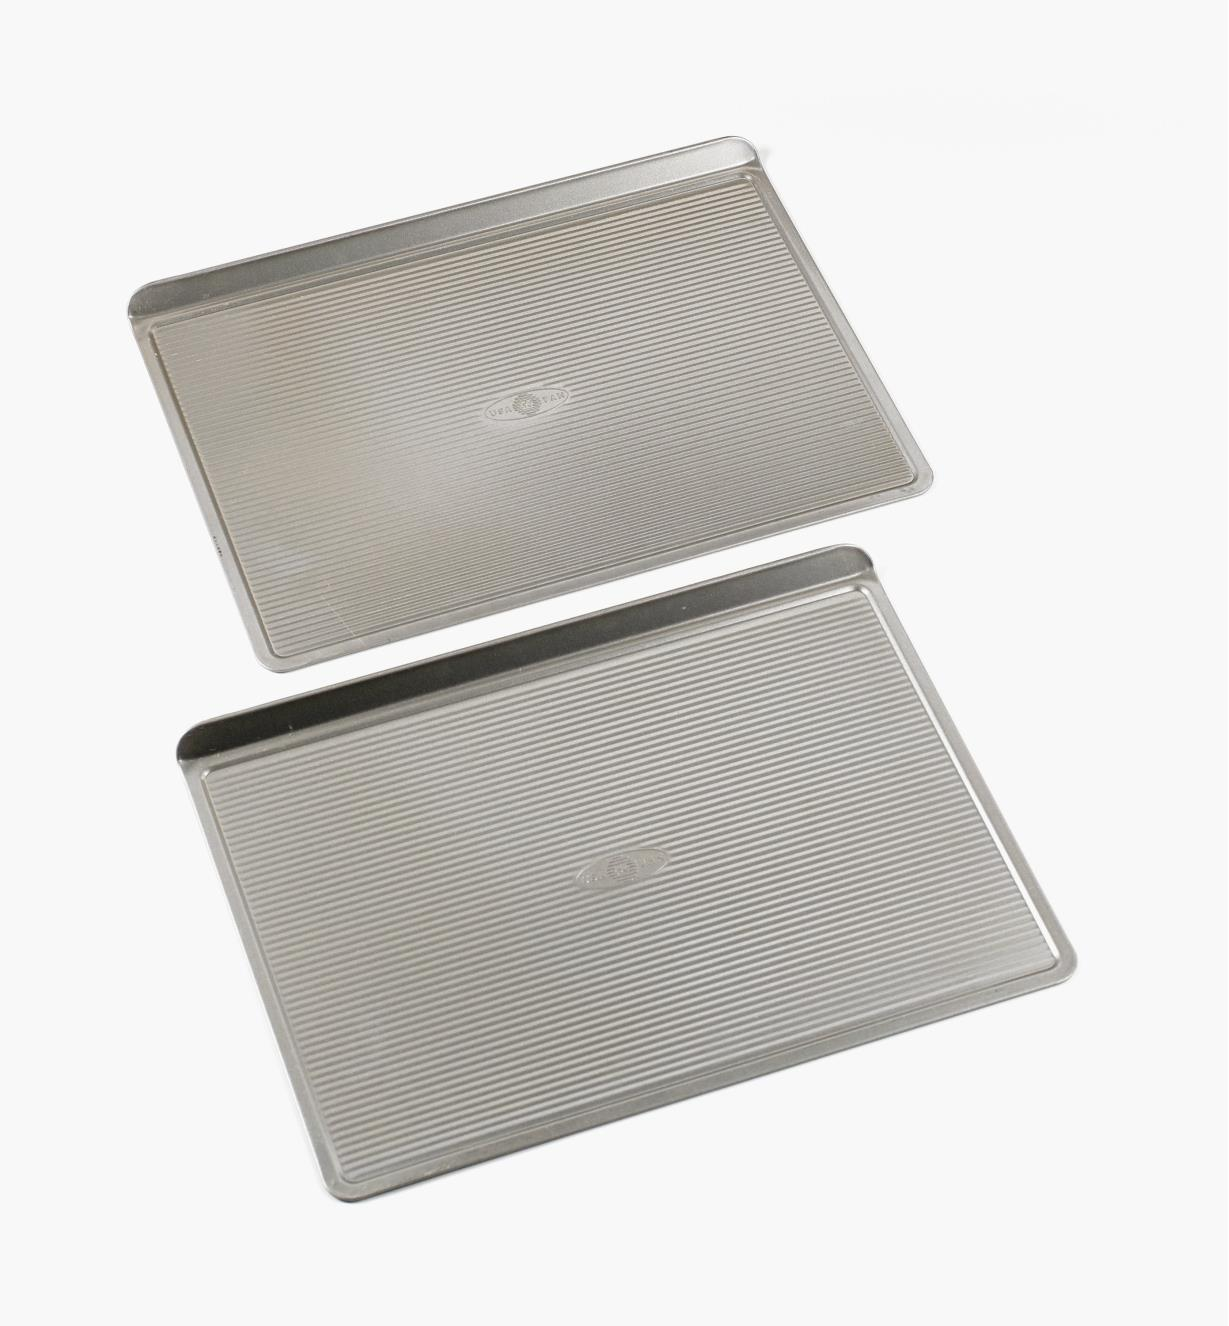 99W9050 - Cookie Sheets, pair